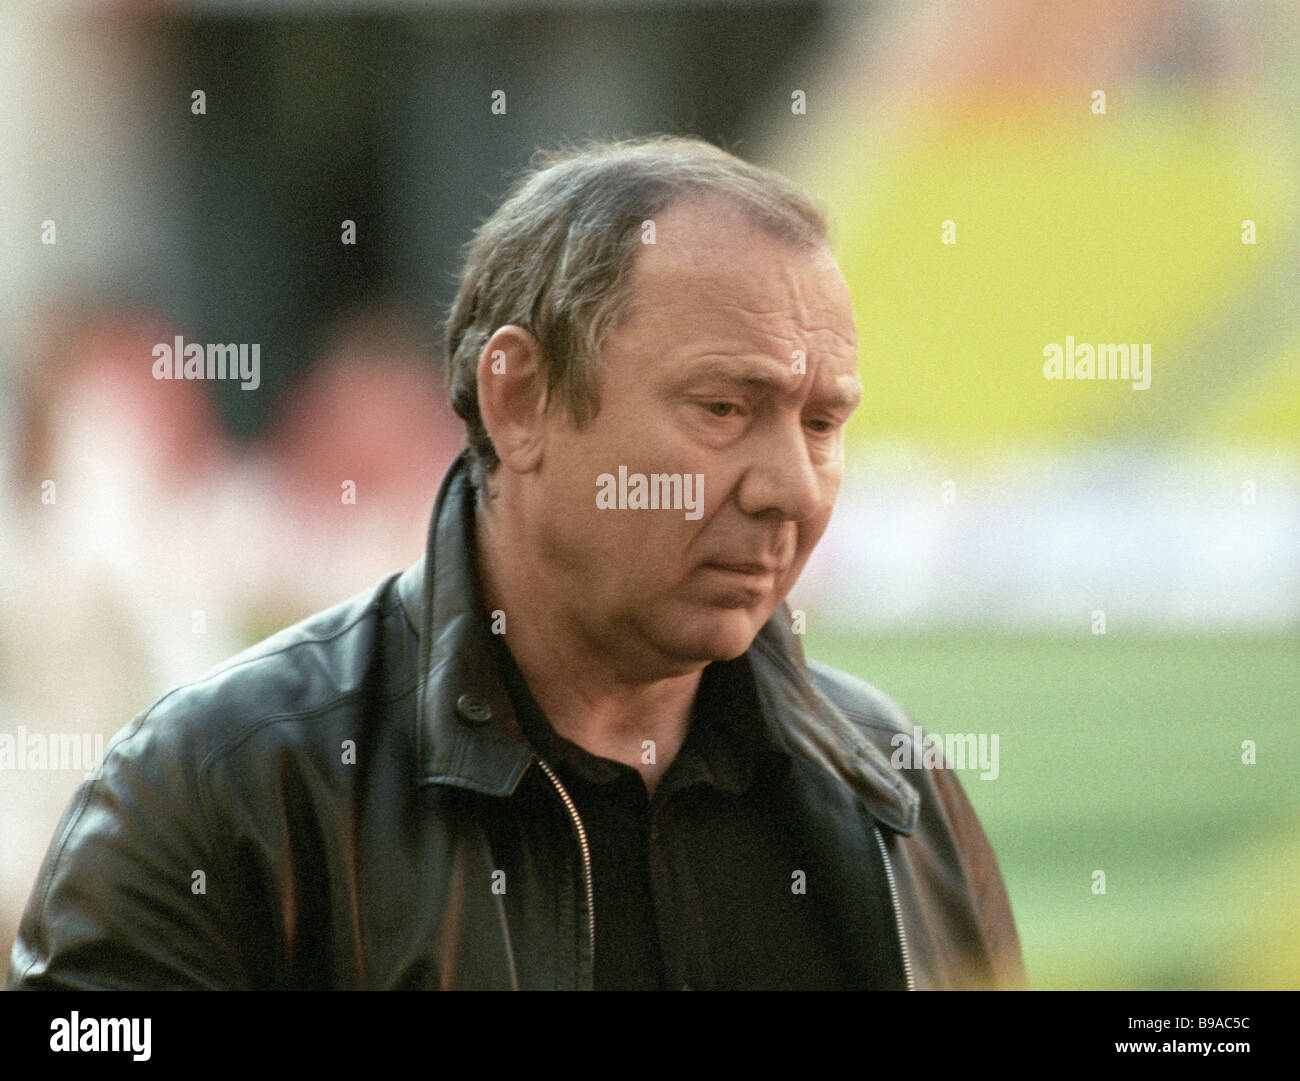 Oleg Romantsev: the history of a football player and coach 40